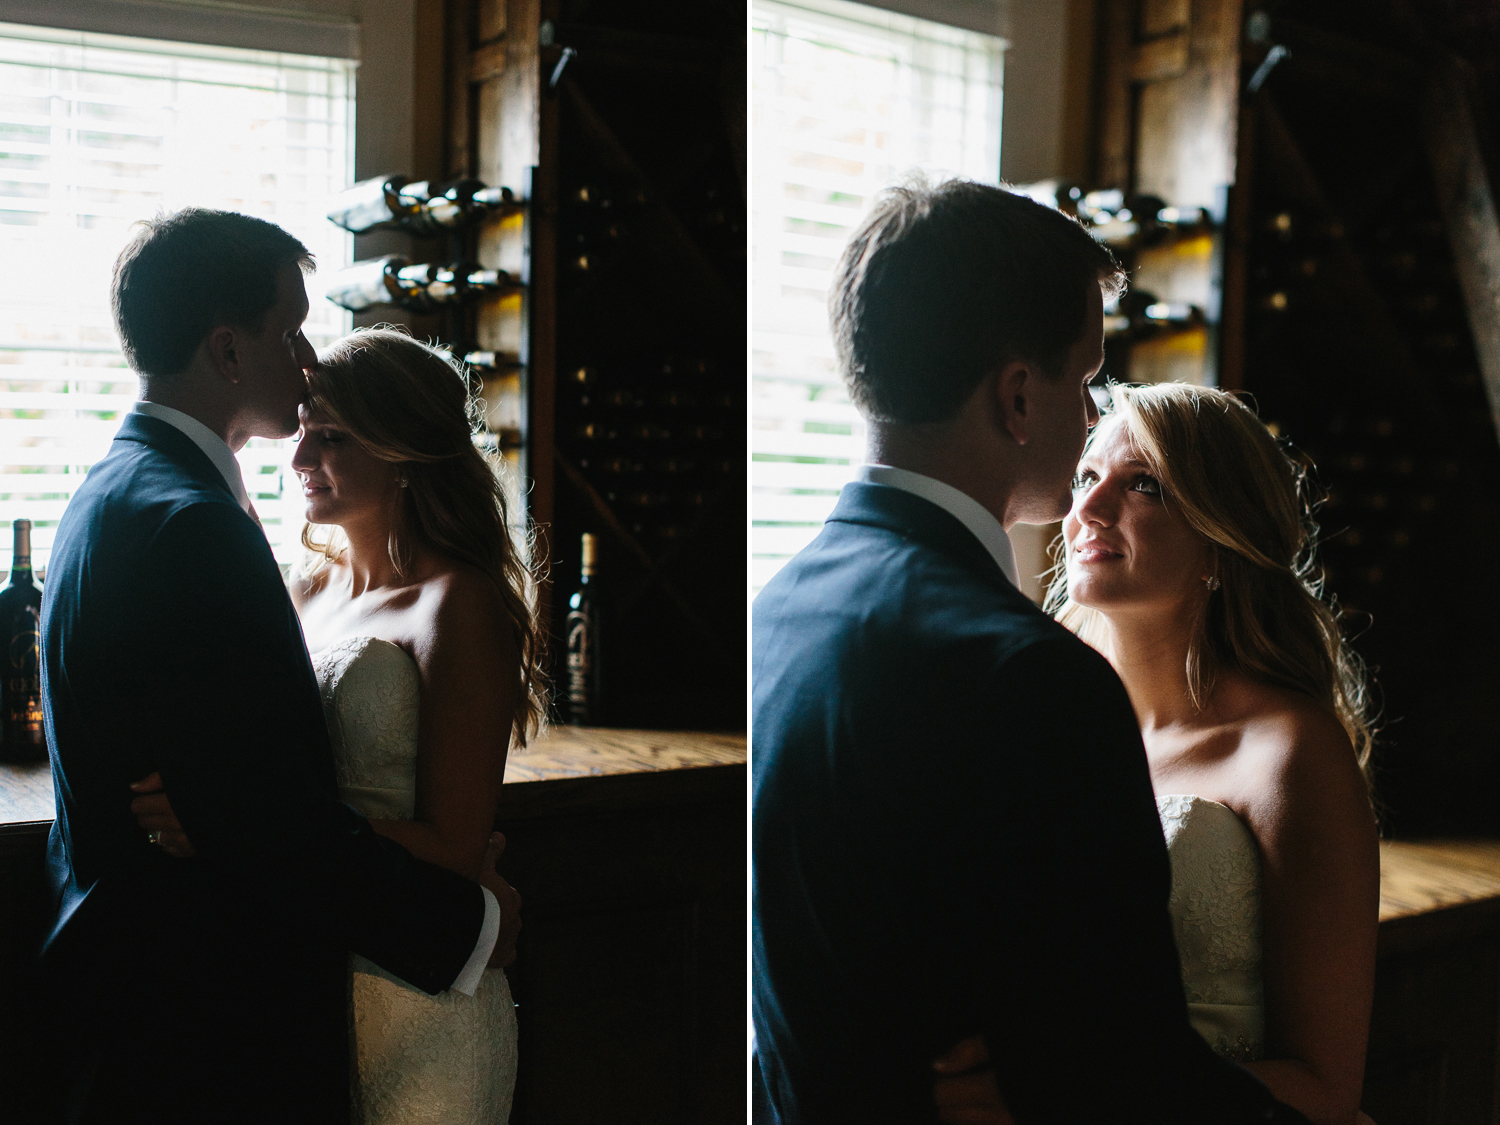 An Intimate Moment Shared by the Bride and Groom After the Wedding